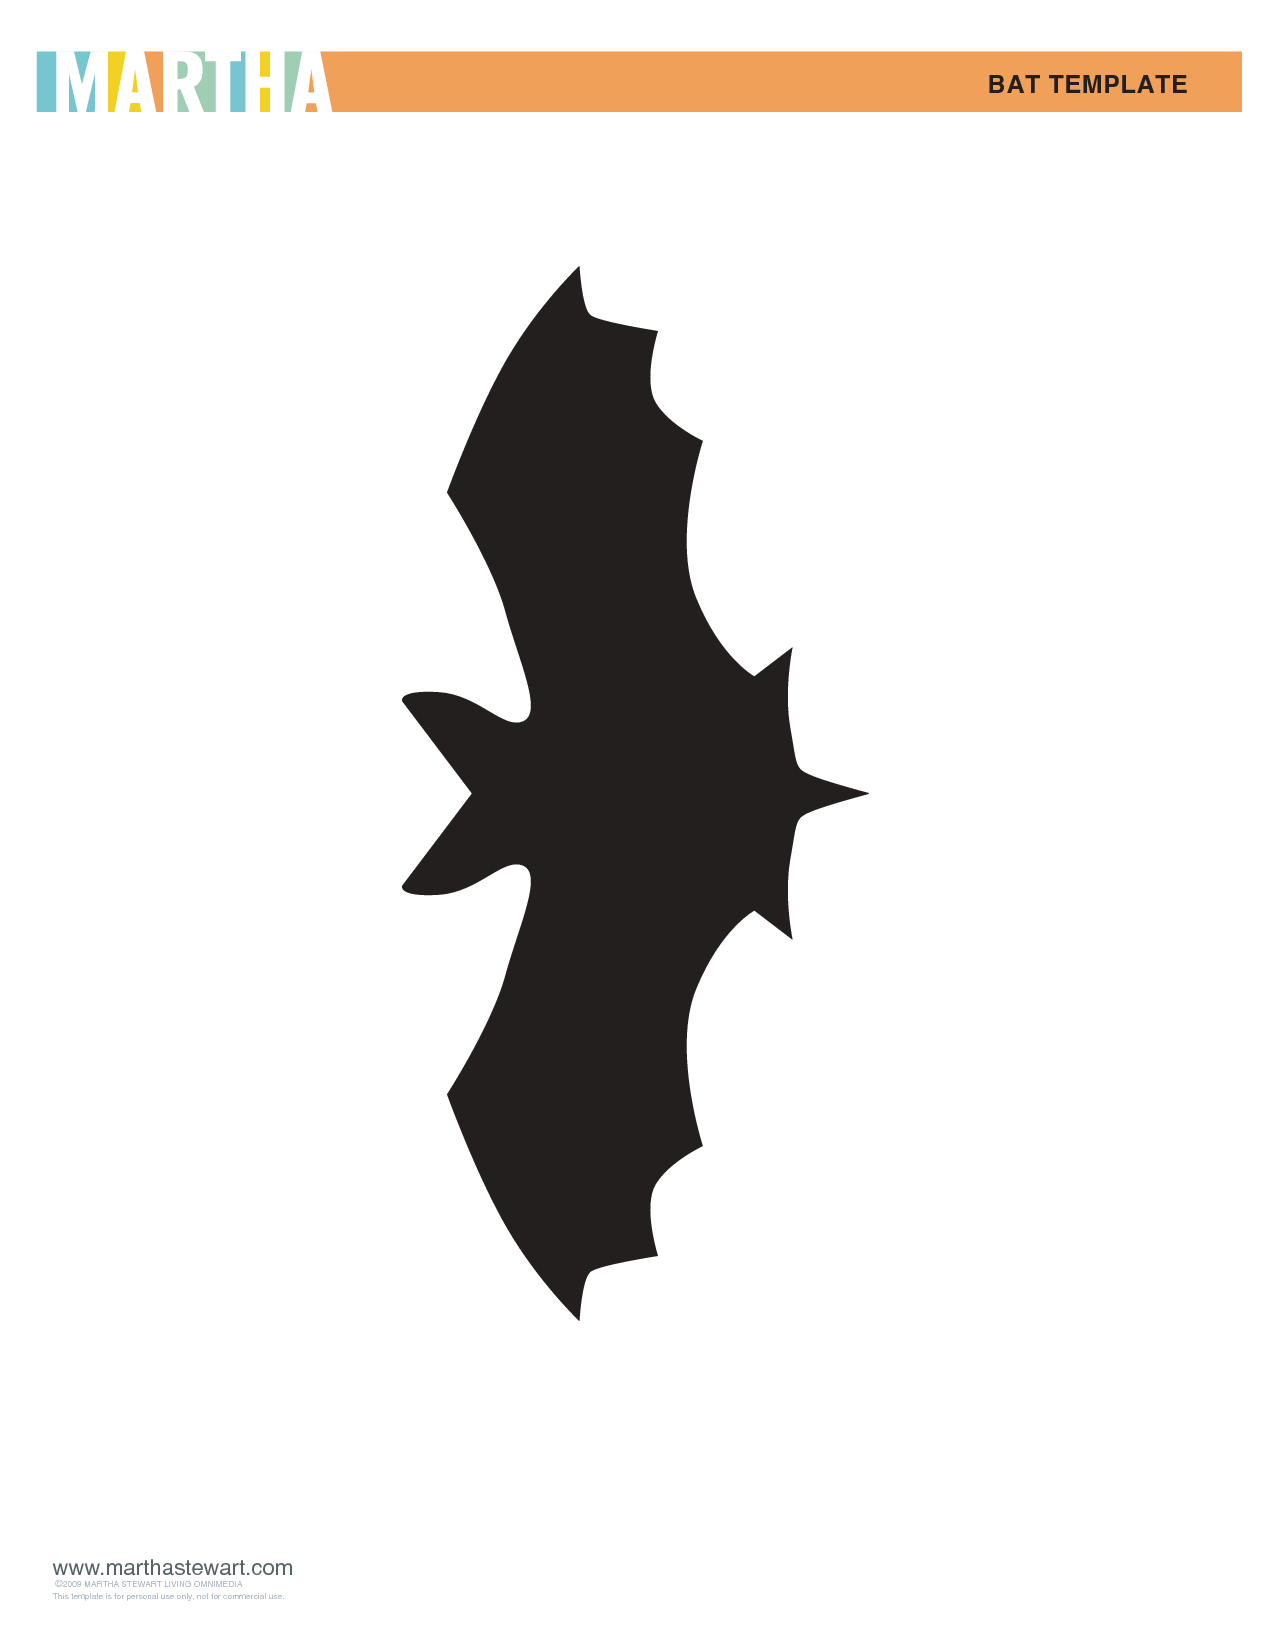 Martha Stewart Bat Template | Spiders and Bats | Pinterest | Bat ...